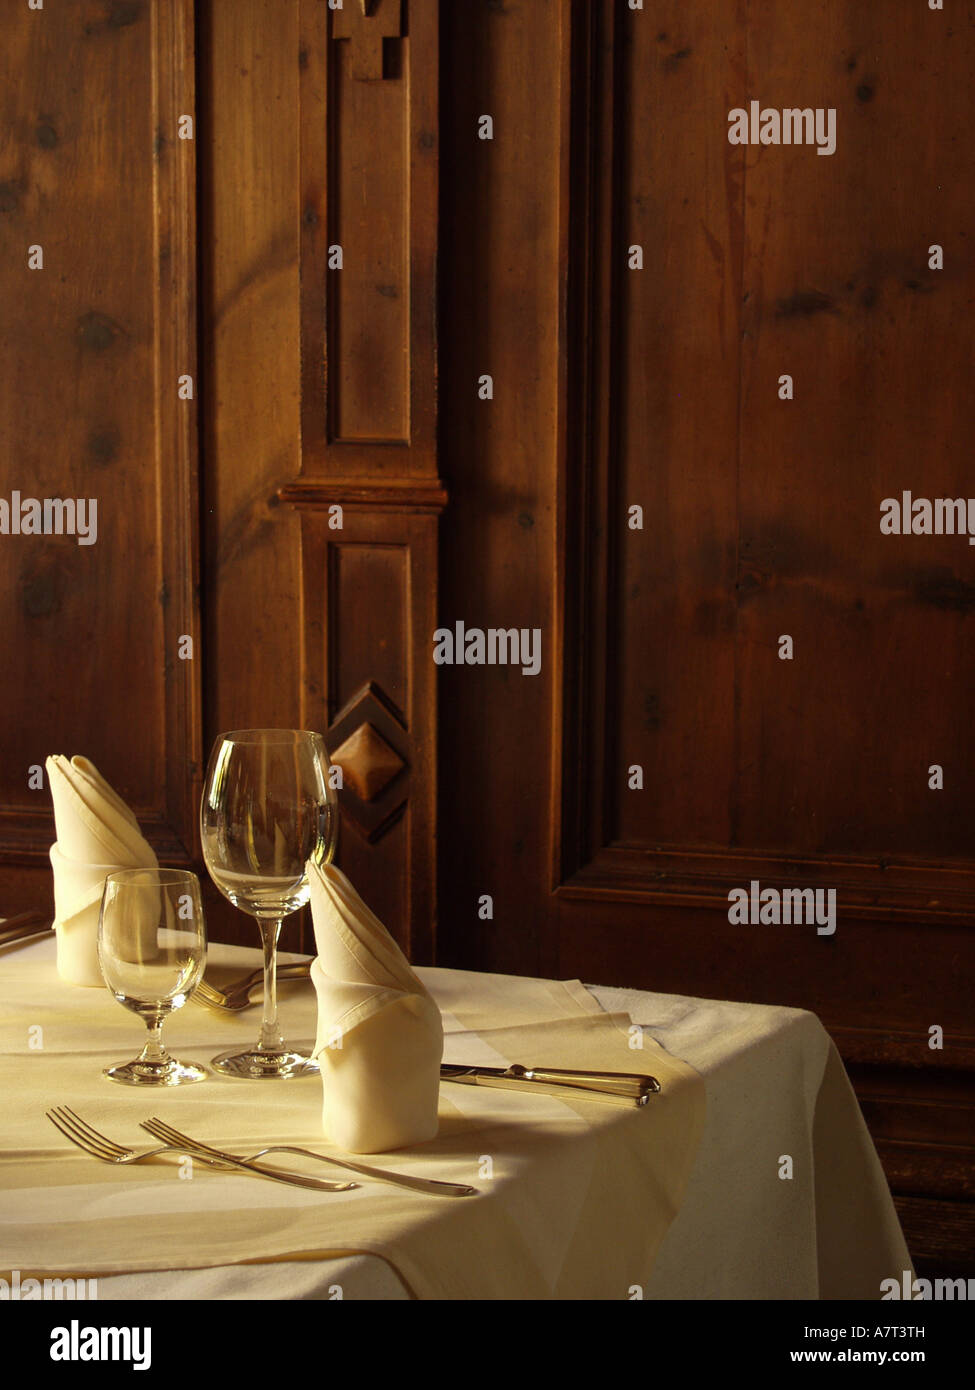 Place setting with folded cloth napkins - Stock Image